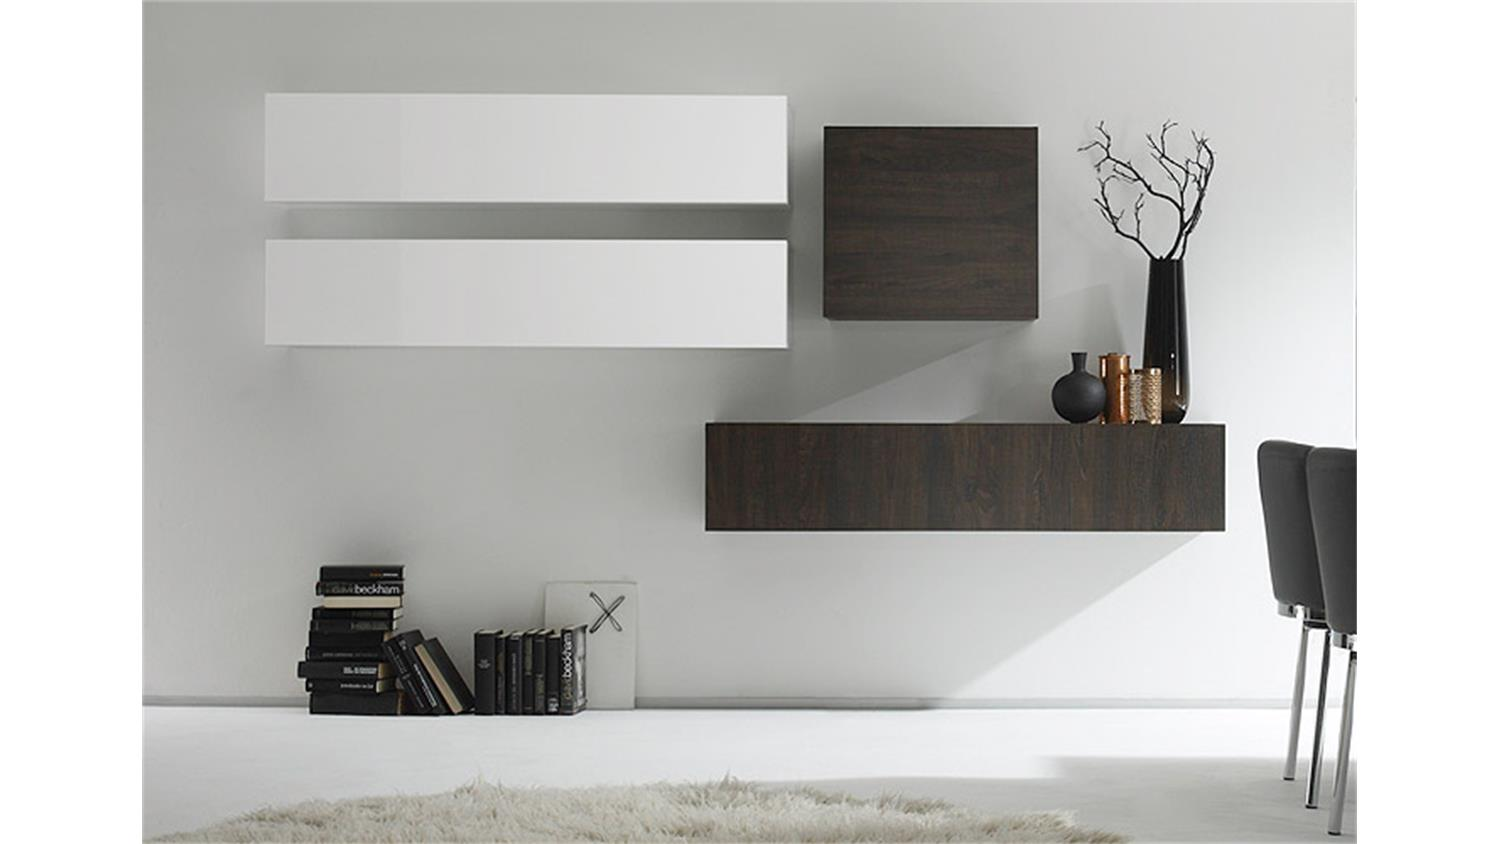 wohnwand cube kombi 10 wei lack und eiche wenge. Black Bedroom Furniture Sets. Home Design Ideas